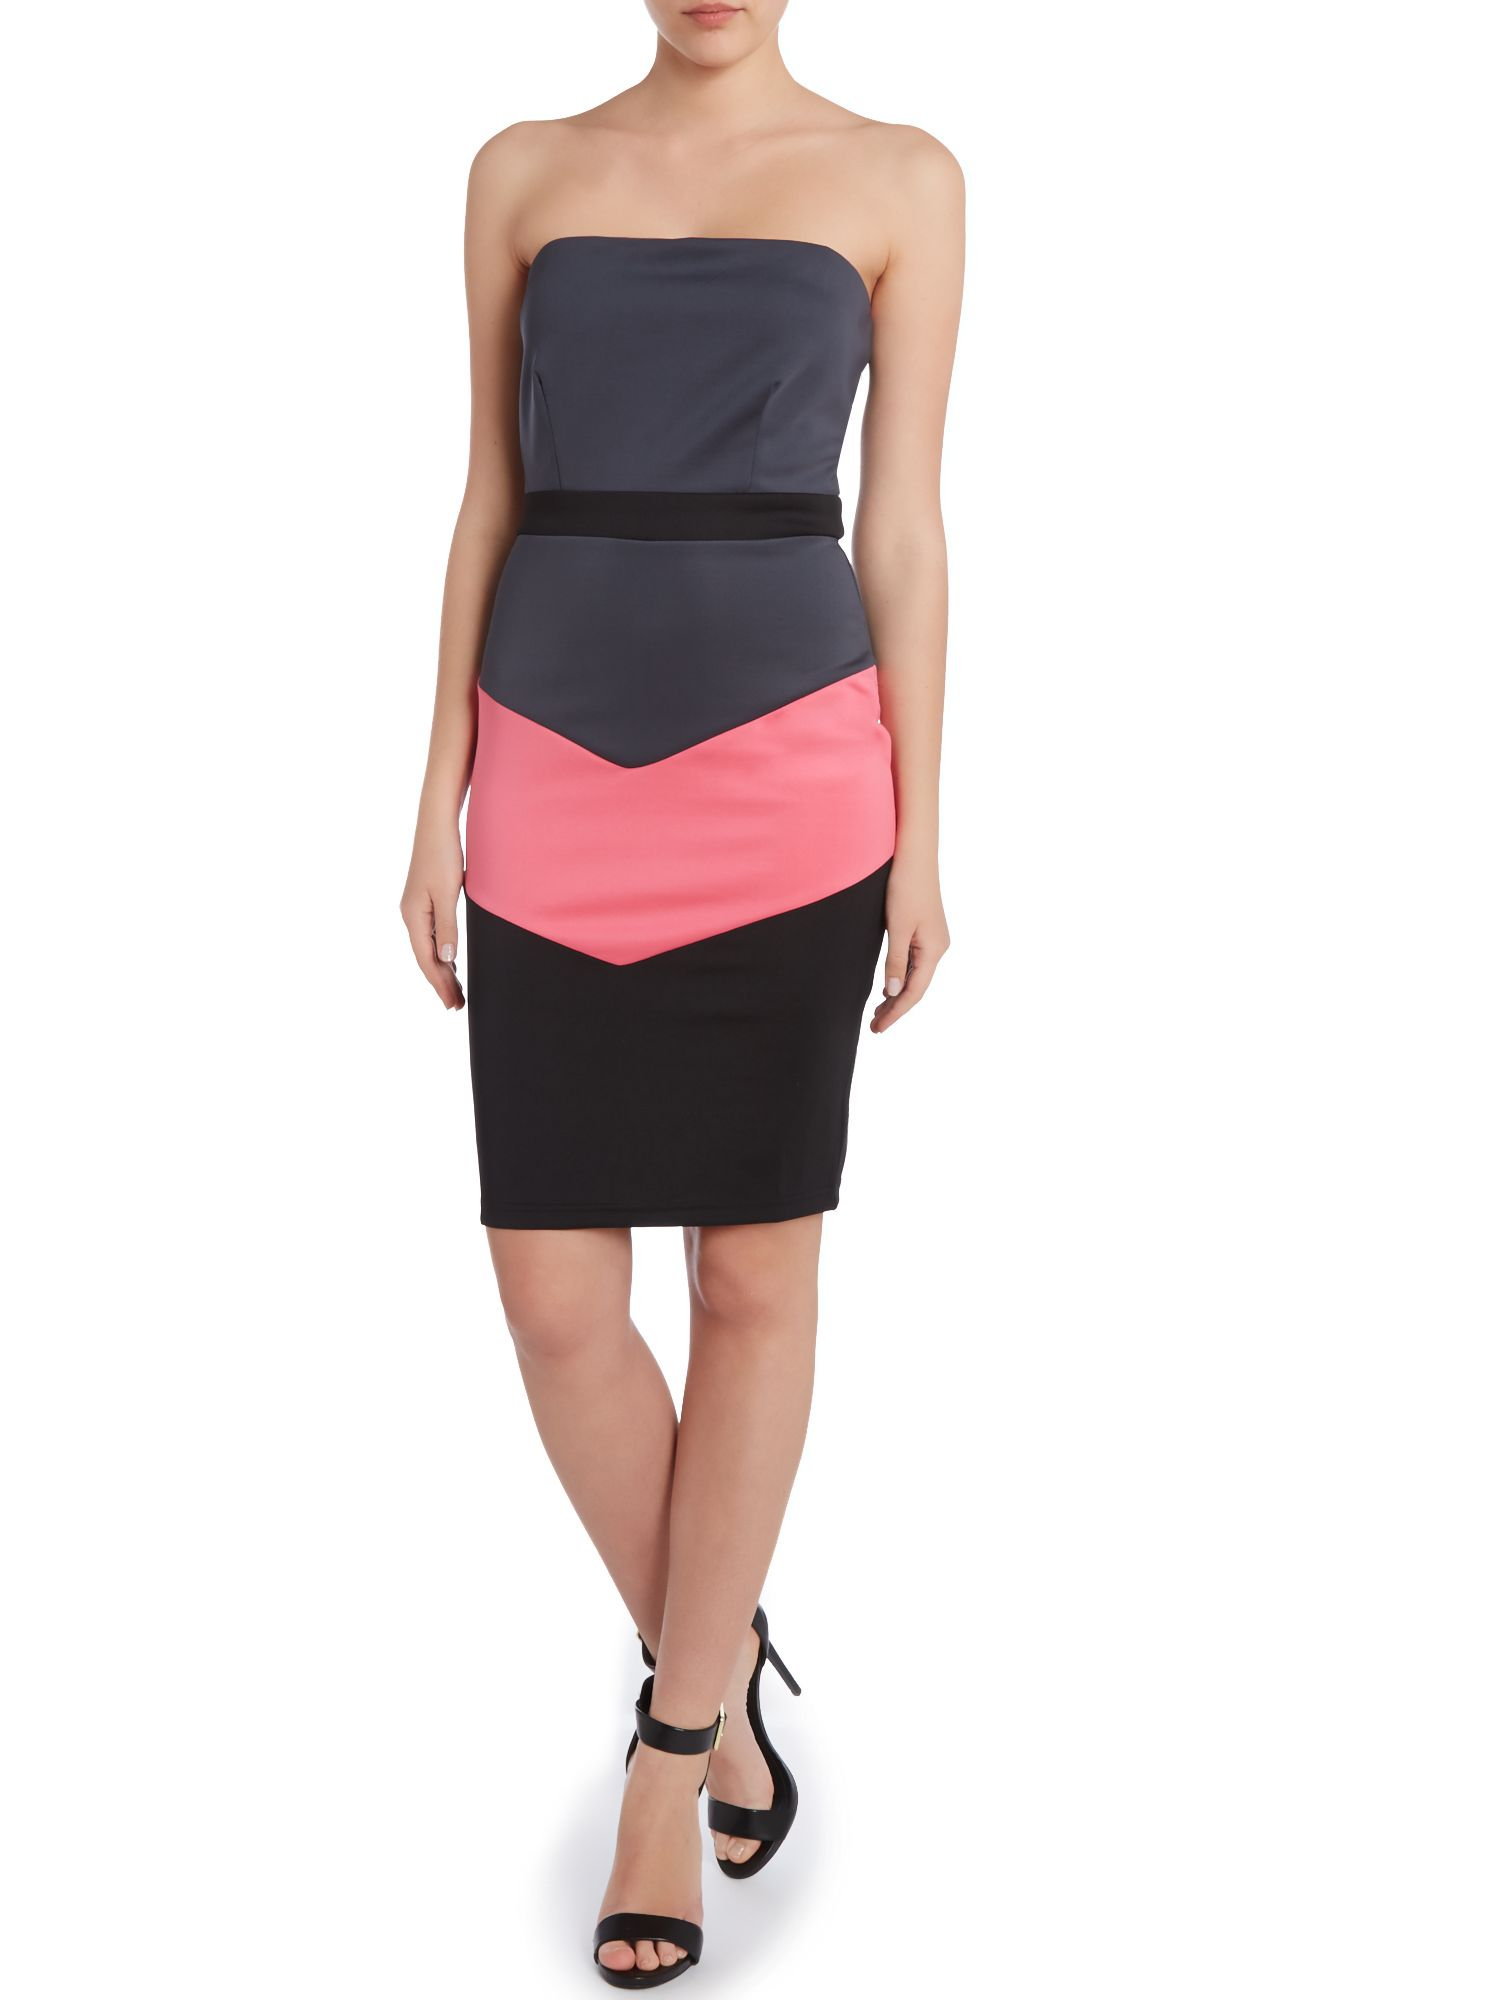 Strapless scuba bodyon dress